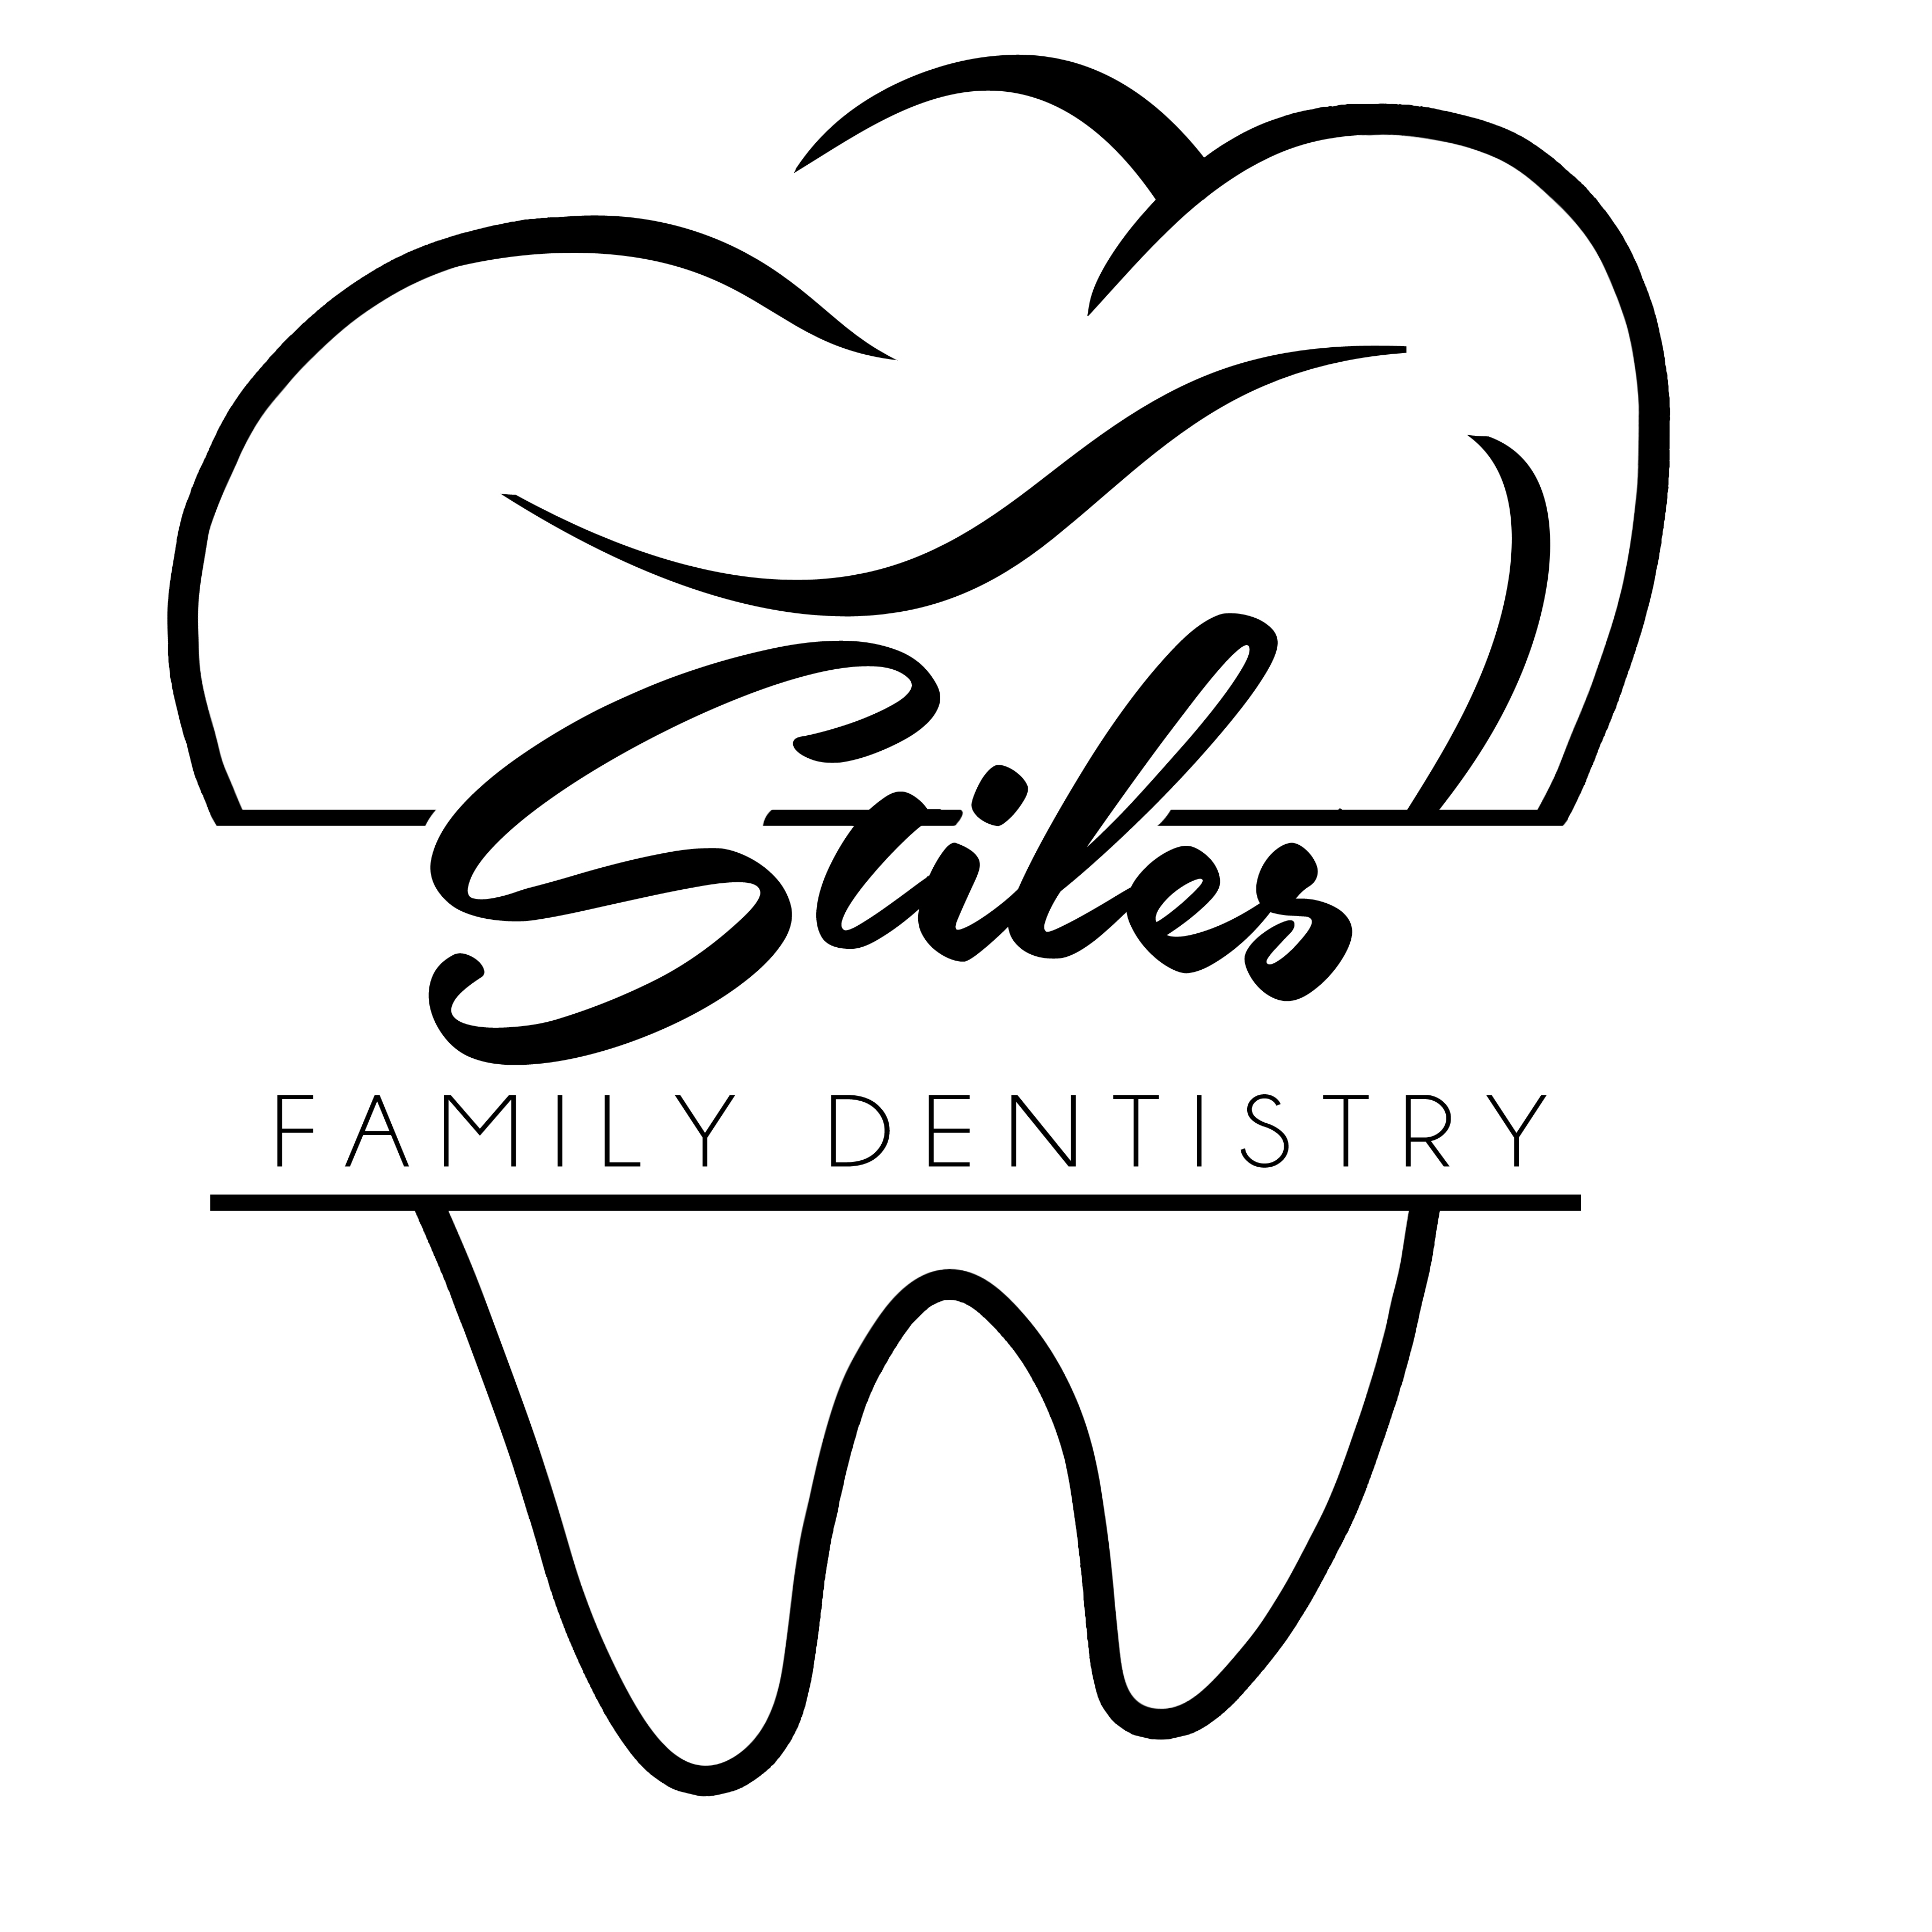 Family Dentistry: Stiles DDS